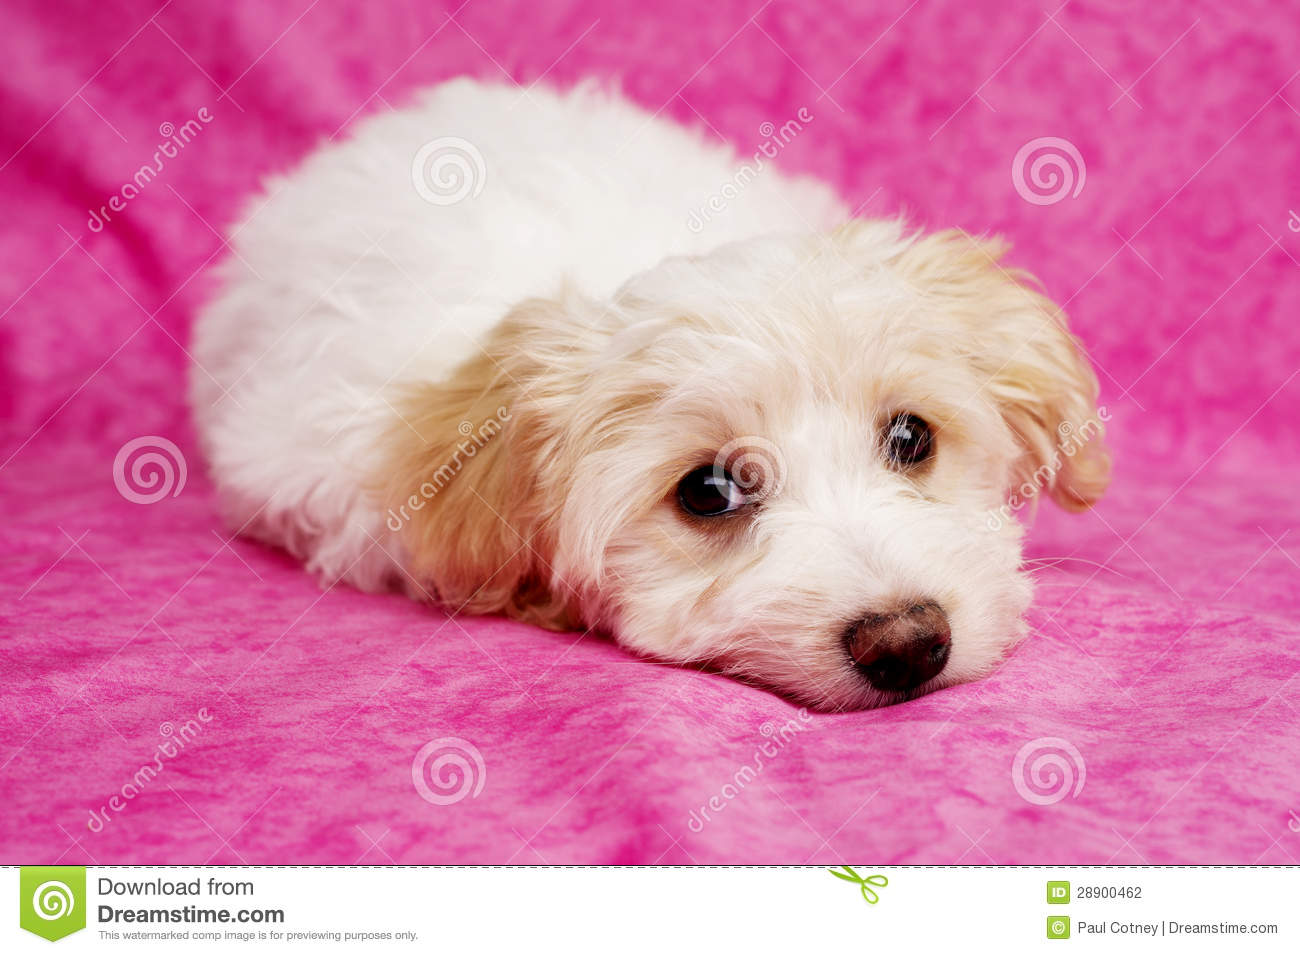 Glitter Animal Print Wallpaper Puppy Laid On A Pink Background Stock Photo Image Of